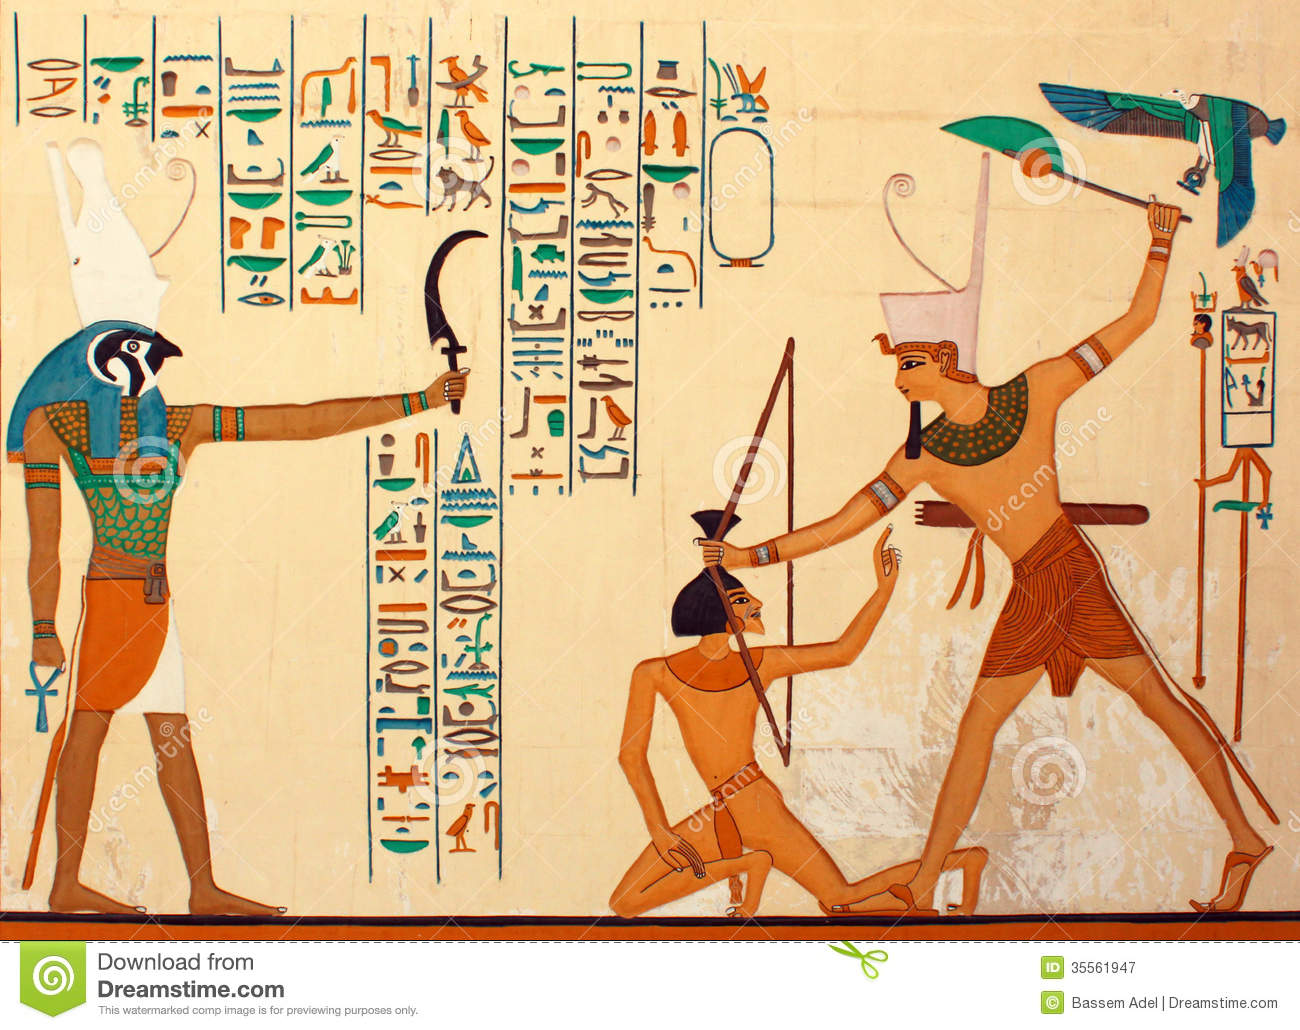 the belief of ancient egyptians and norsemen regarding a supreme being Latest articles daily life of priests and priestesses in ancient egypt ymir – primordial norse giant whose body parts formed the world 400-year-old documents reveal japanese opium was produced for medical purposes.